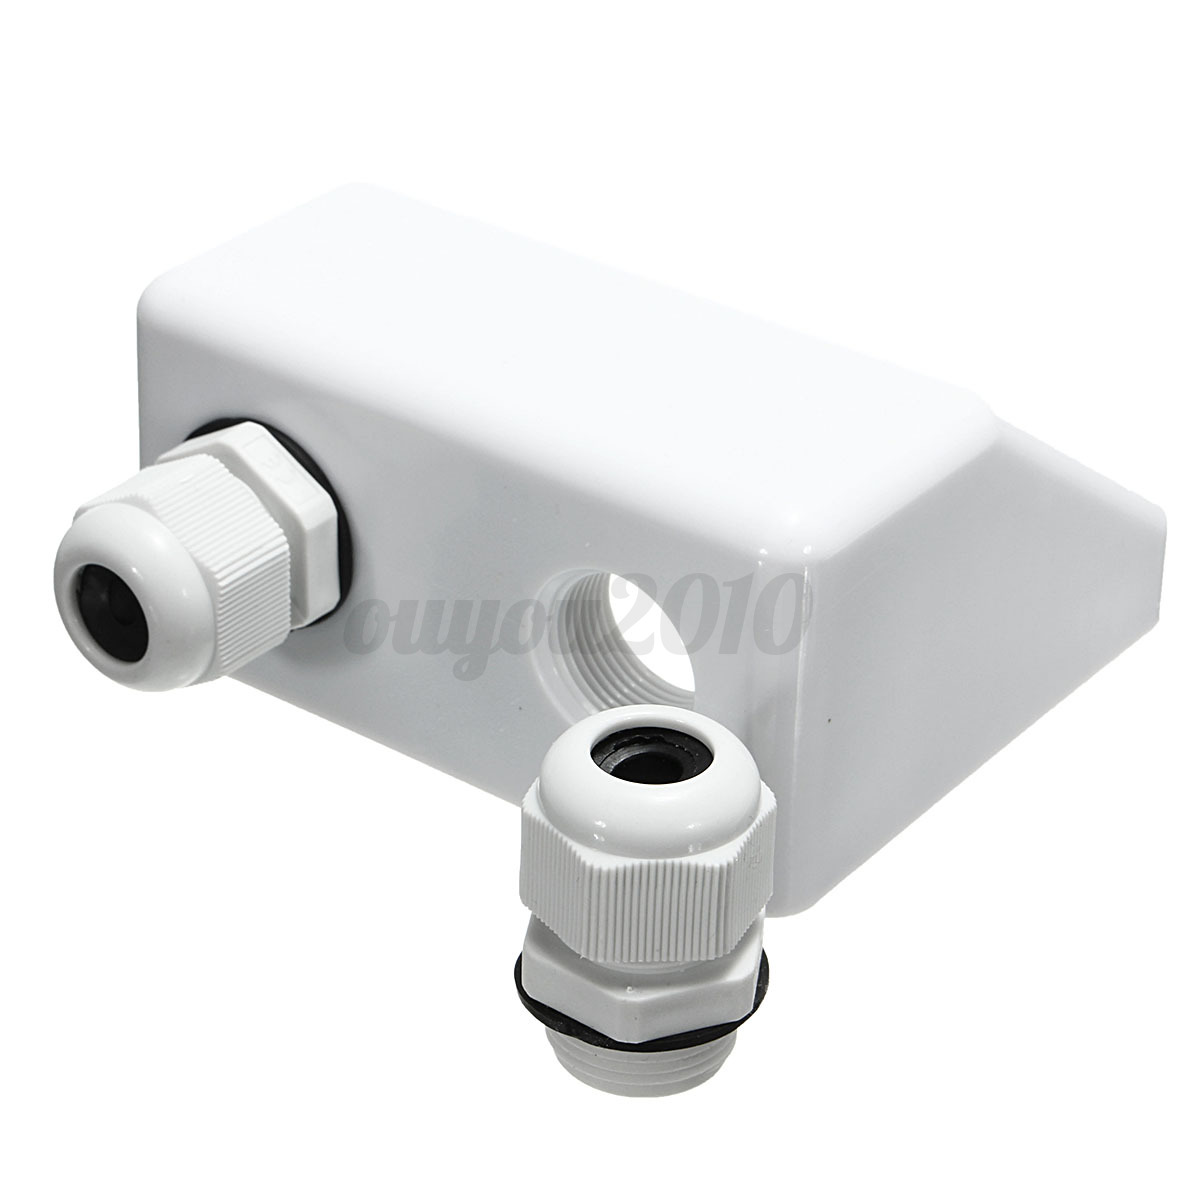 1 PCS Roof Solar Panel Cable Entry Gland Double Cable Gland Box For ...